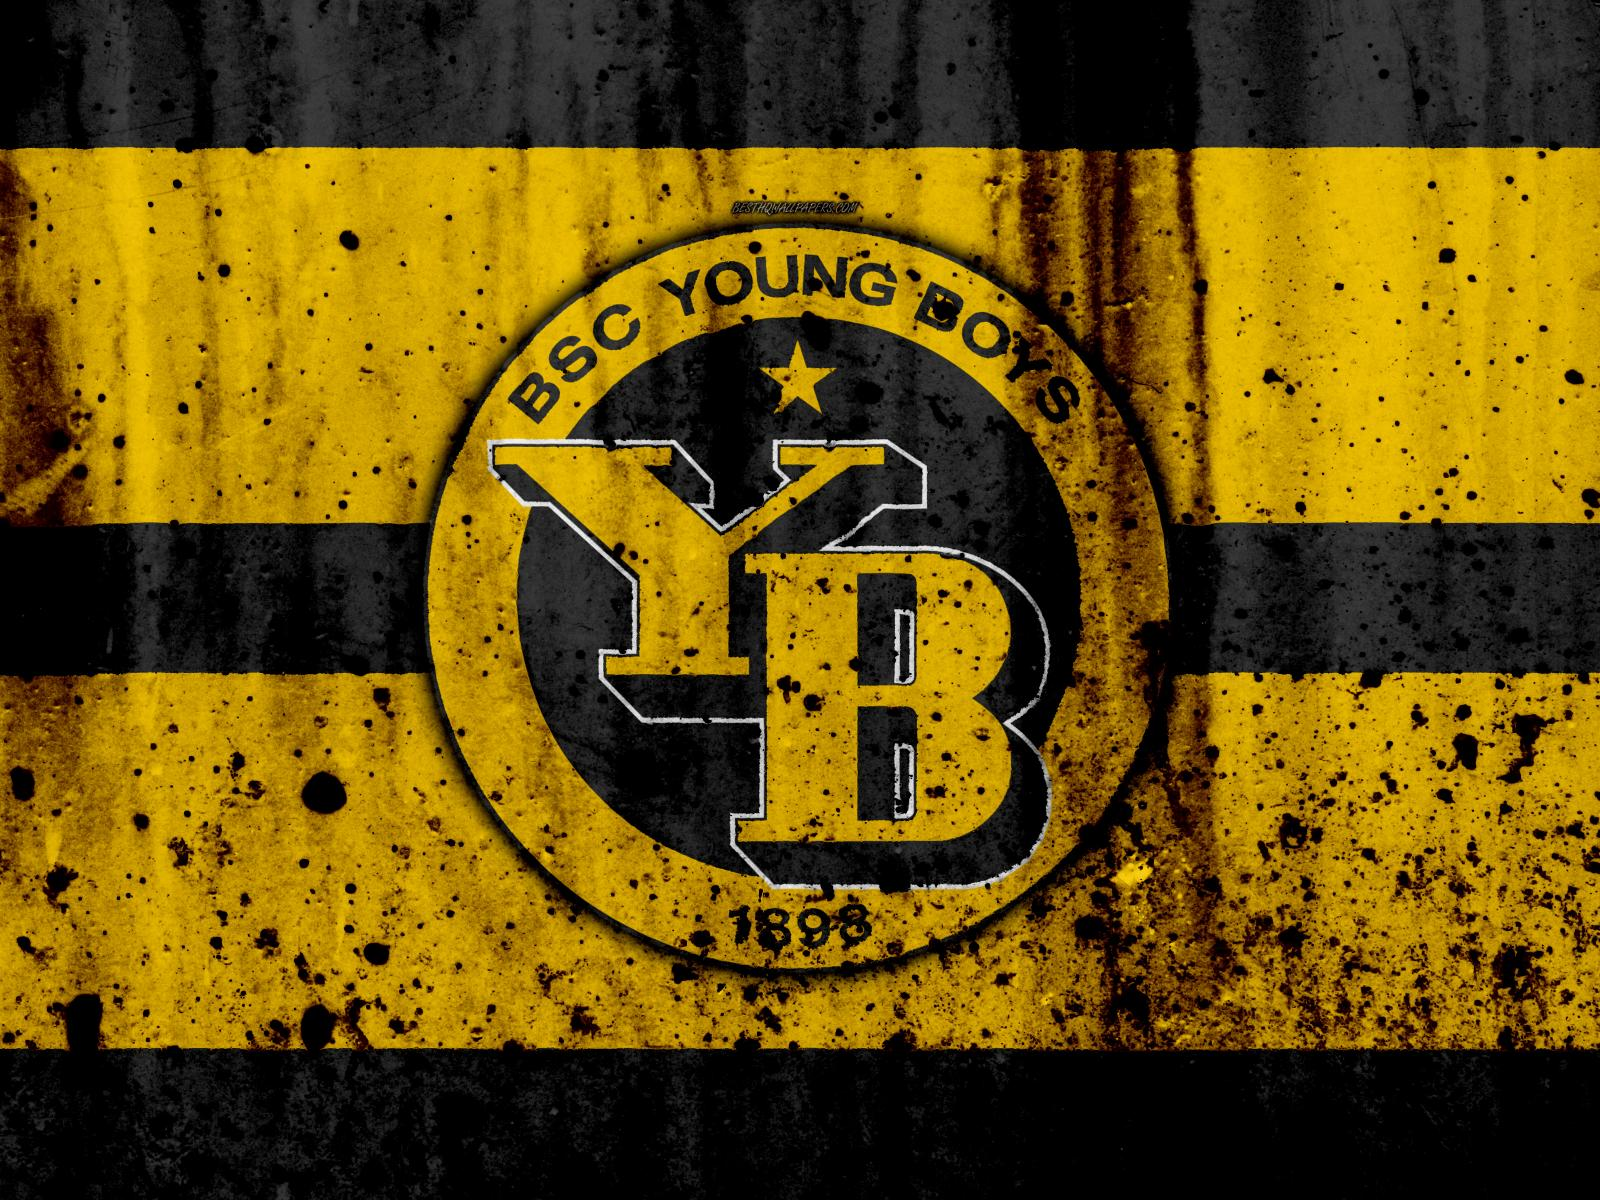 1600x1200 - BSC Young Boys Wallpapers 19